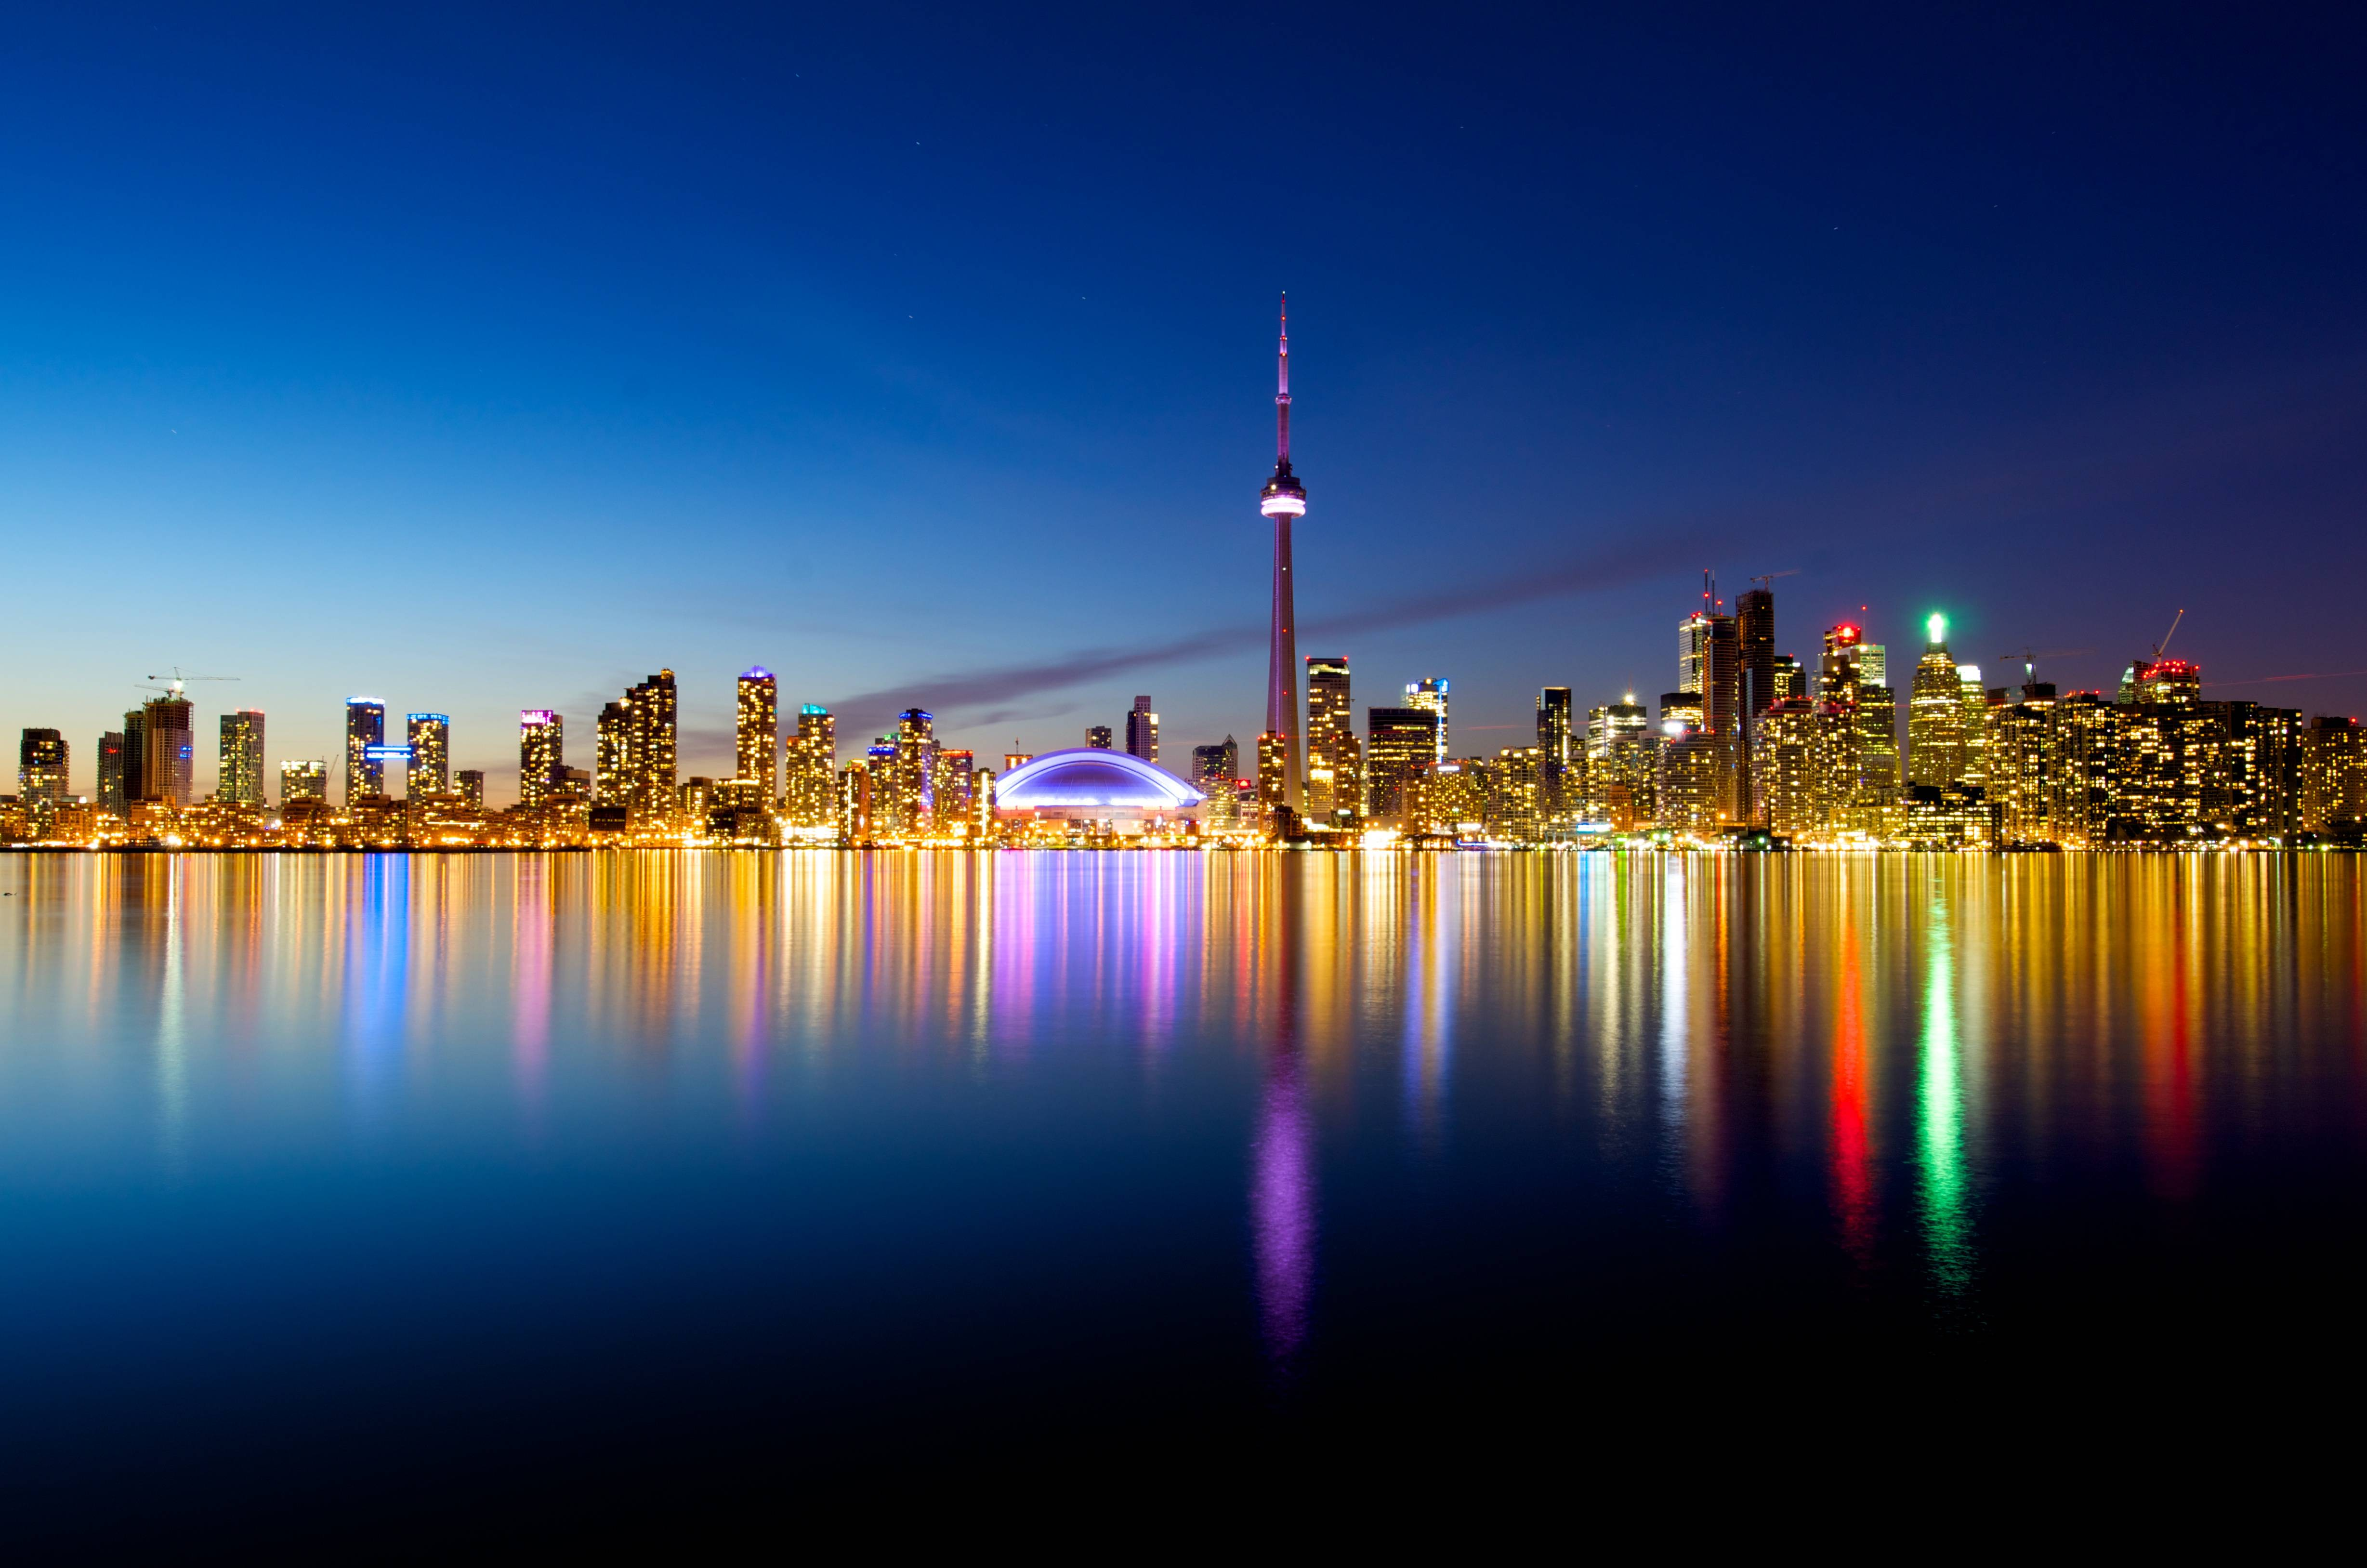 Travel Background Hd Wallpapers Free Niagra Falls Toronto Kanada The Most Multicultural Cities In The